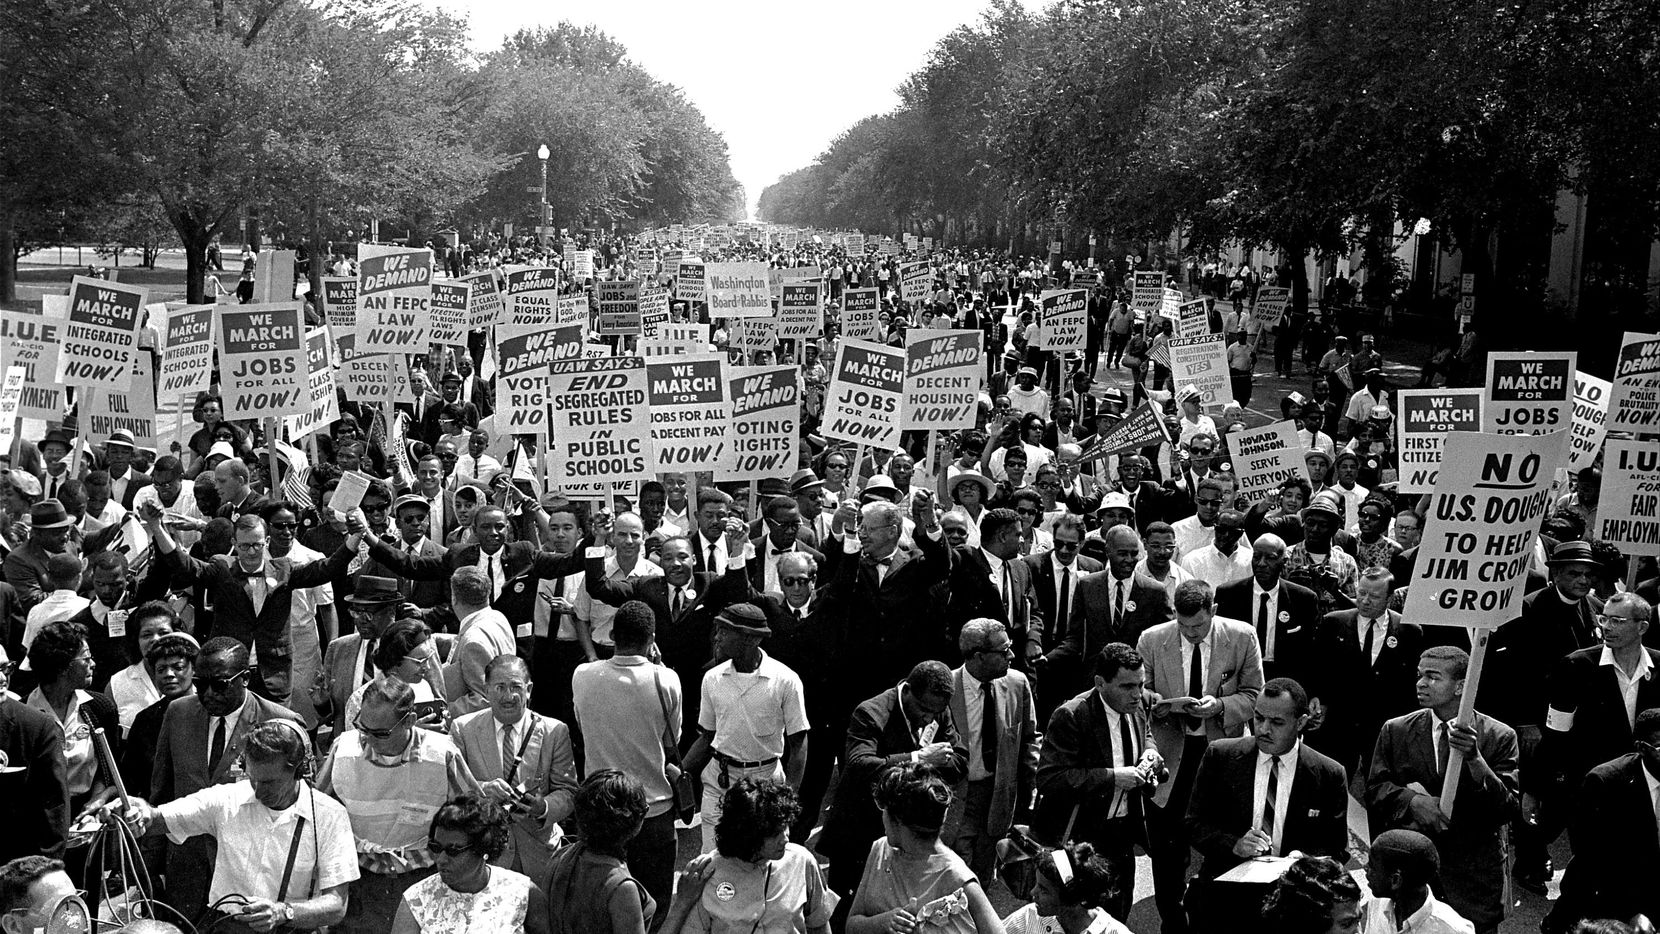 The Rev. Martin Luther King Jr. (center left with arms raised) marches along Constitution Avenue with other civil rights protesters carrying placards, from the Washington Monument to the Lincoln Memorial during the March on Washington on Aug. 28, 1963. (AP Photo)